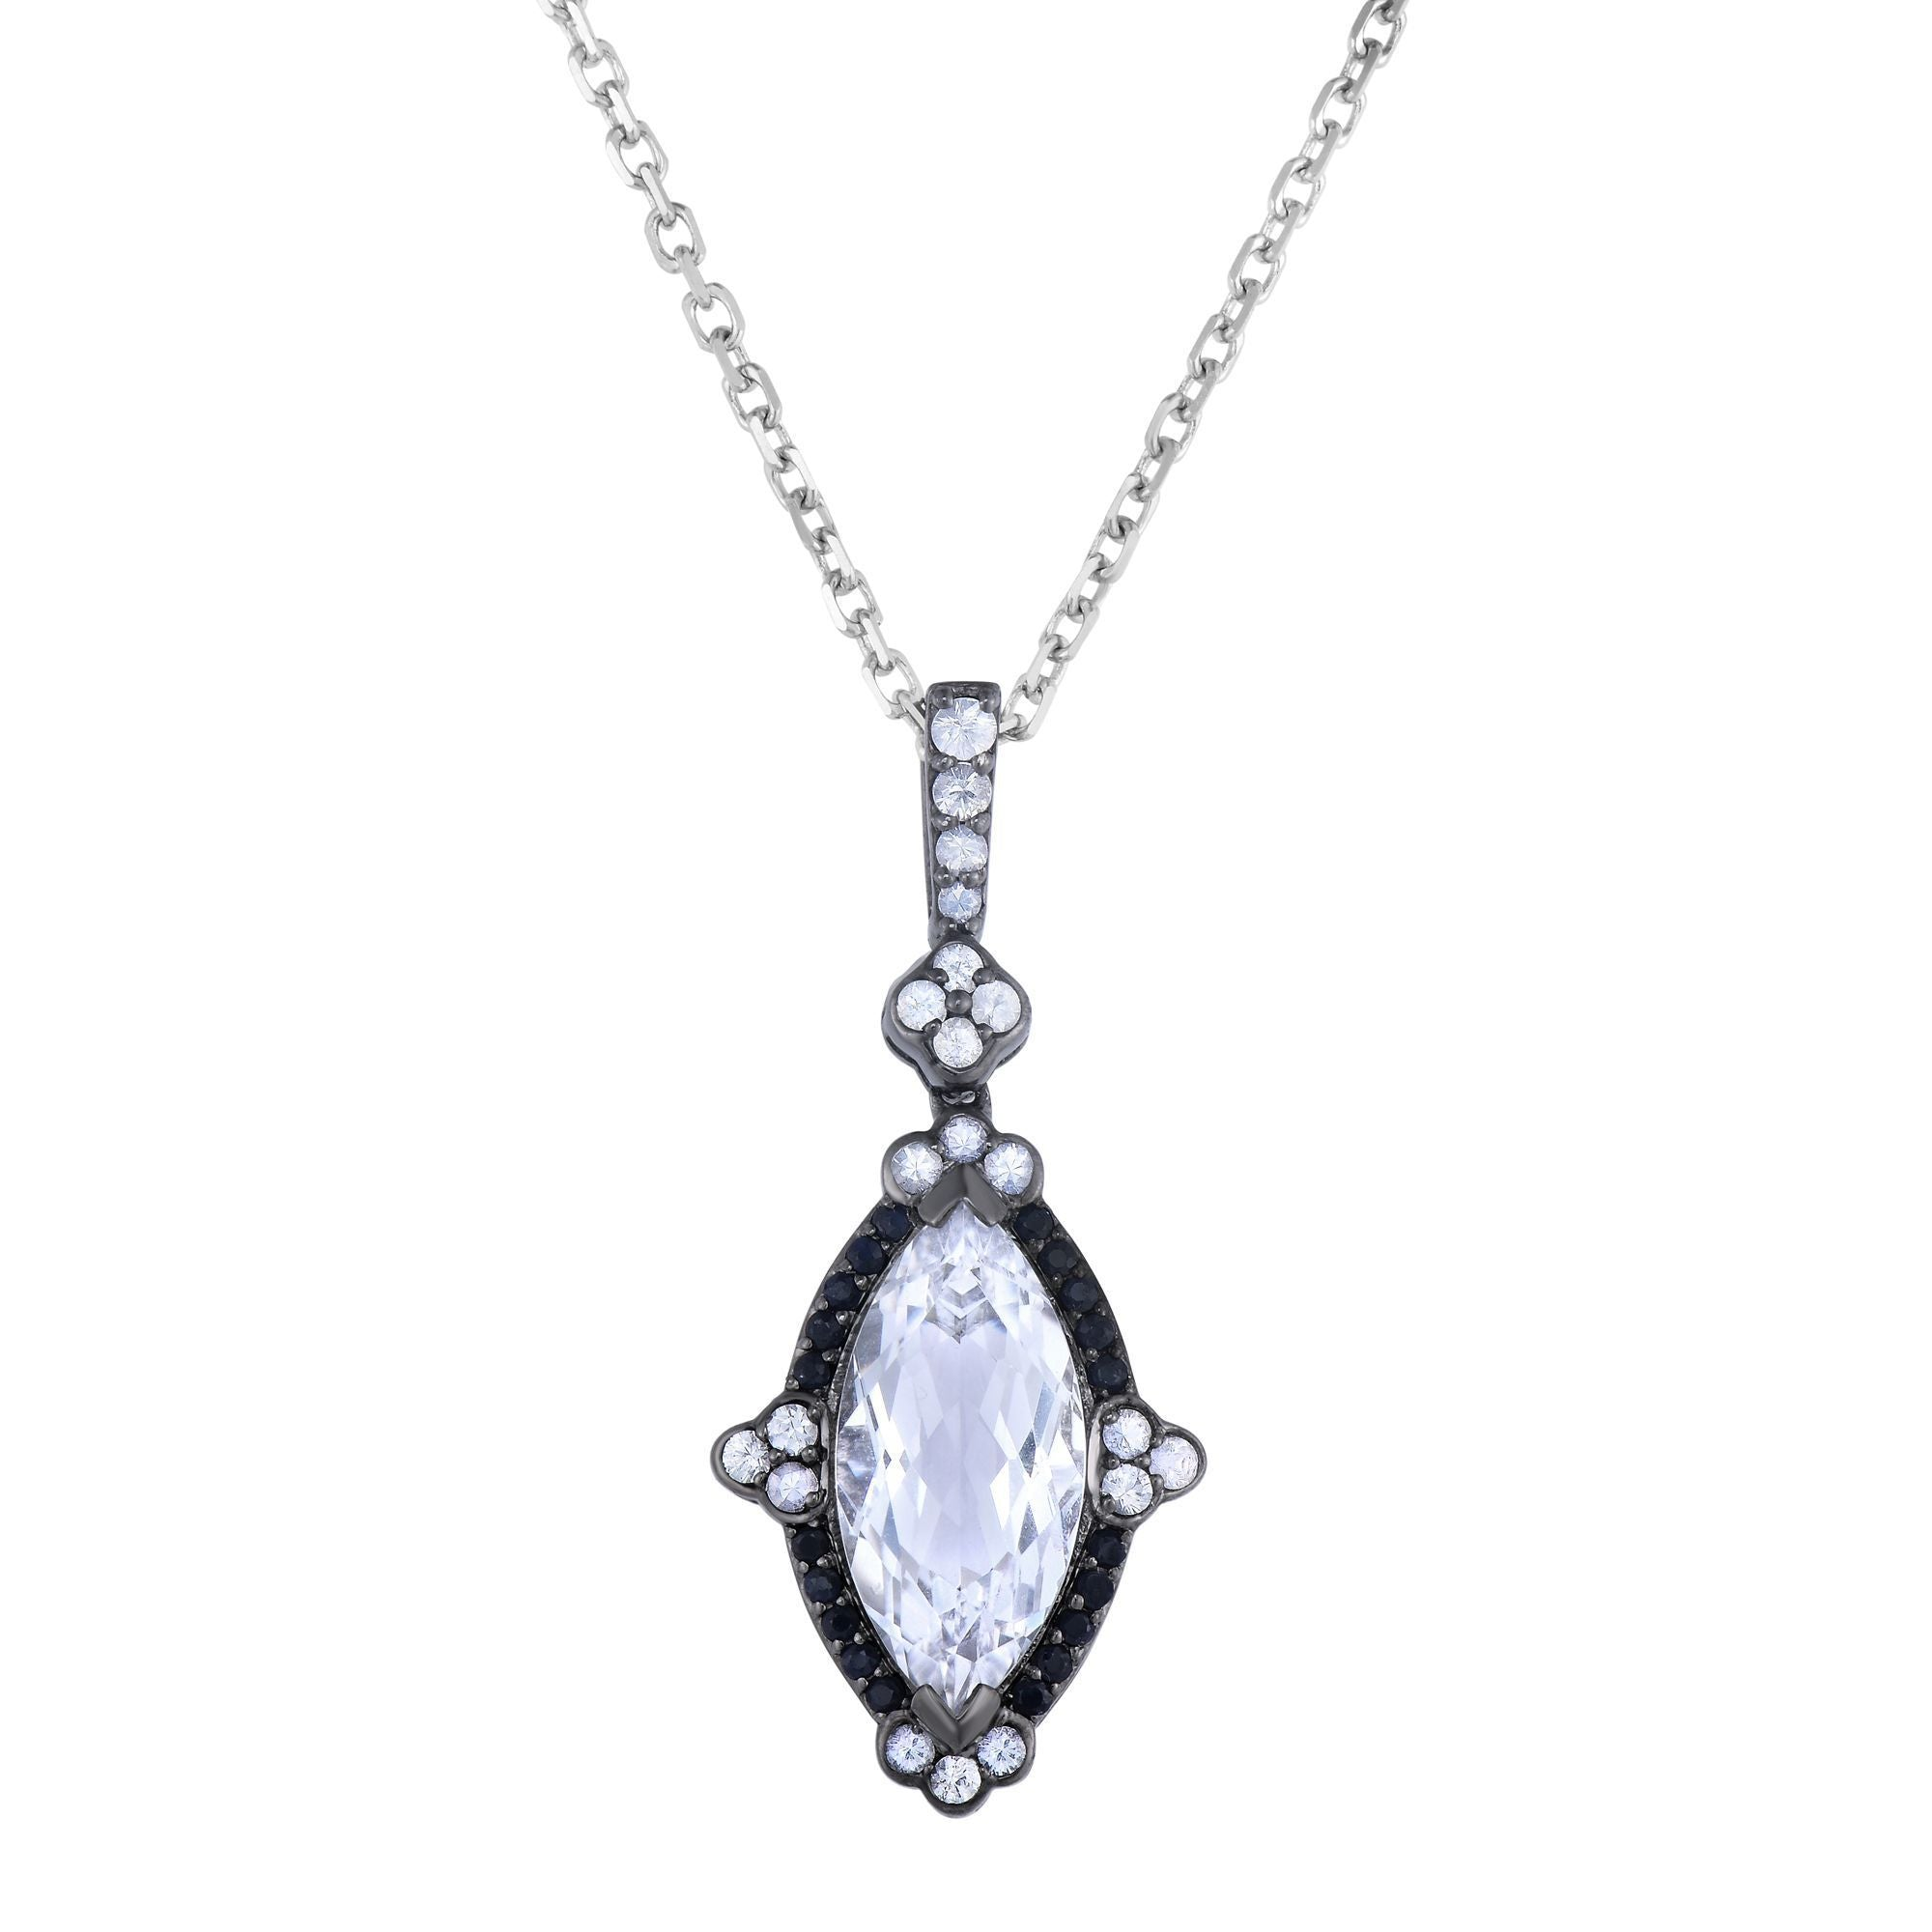 Phillip Gavriel Necklace - T'rente Fine Jewelry